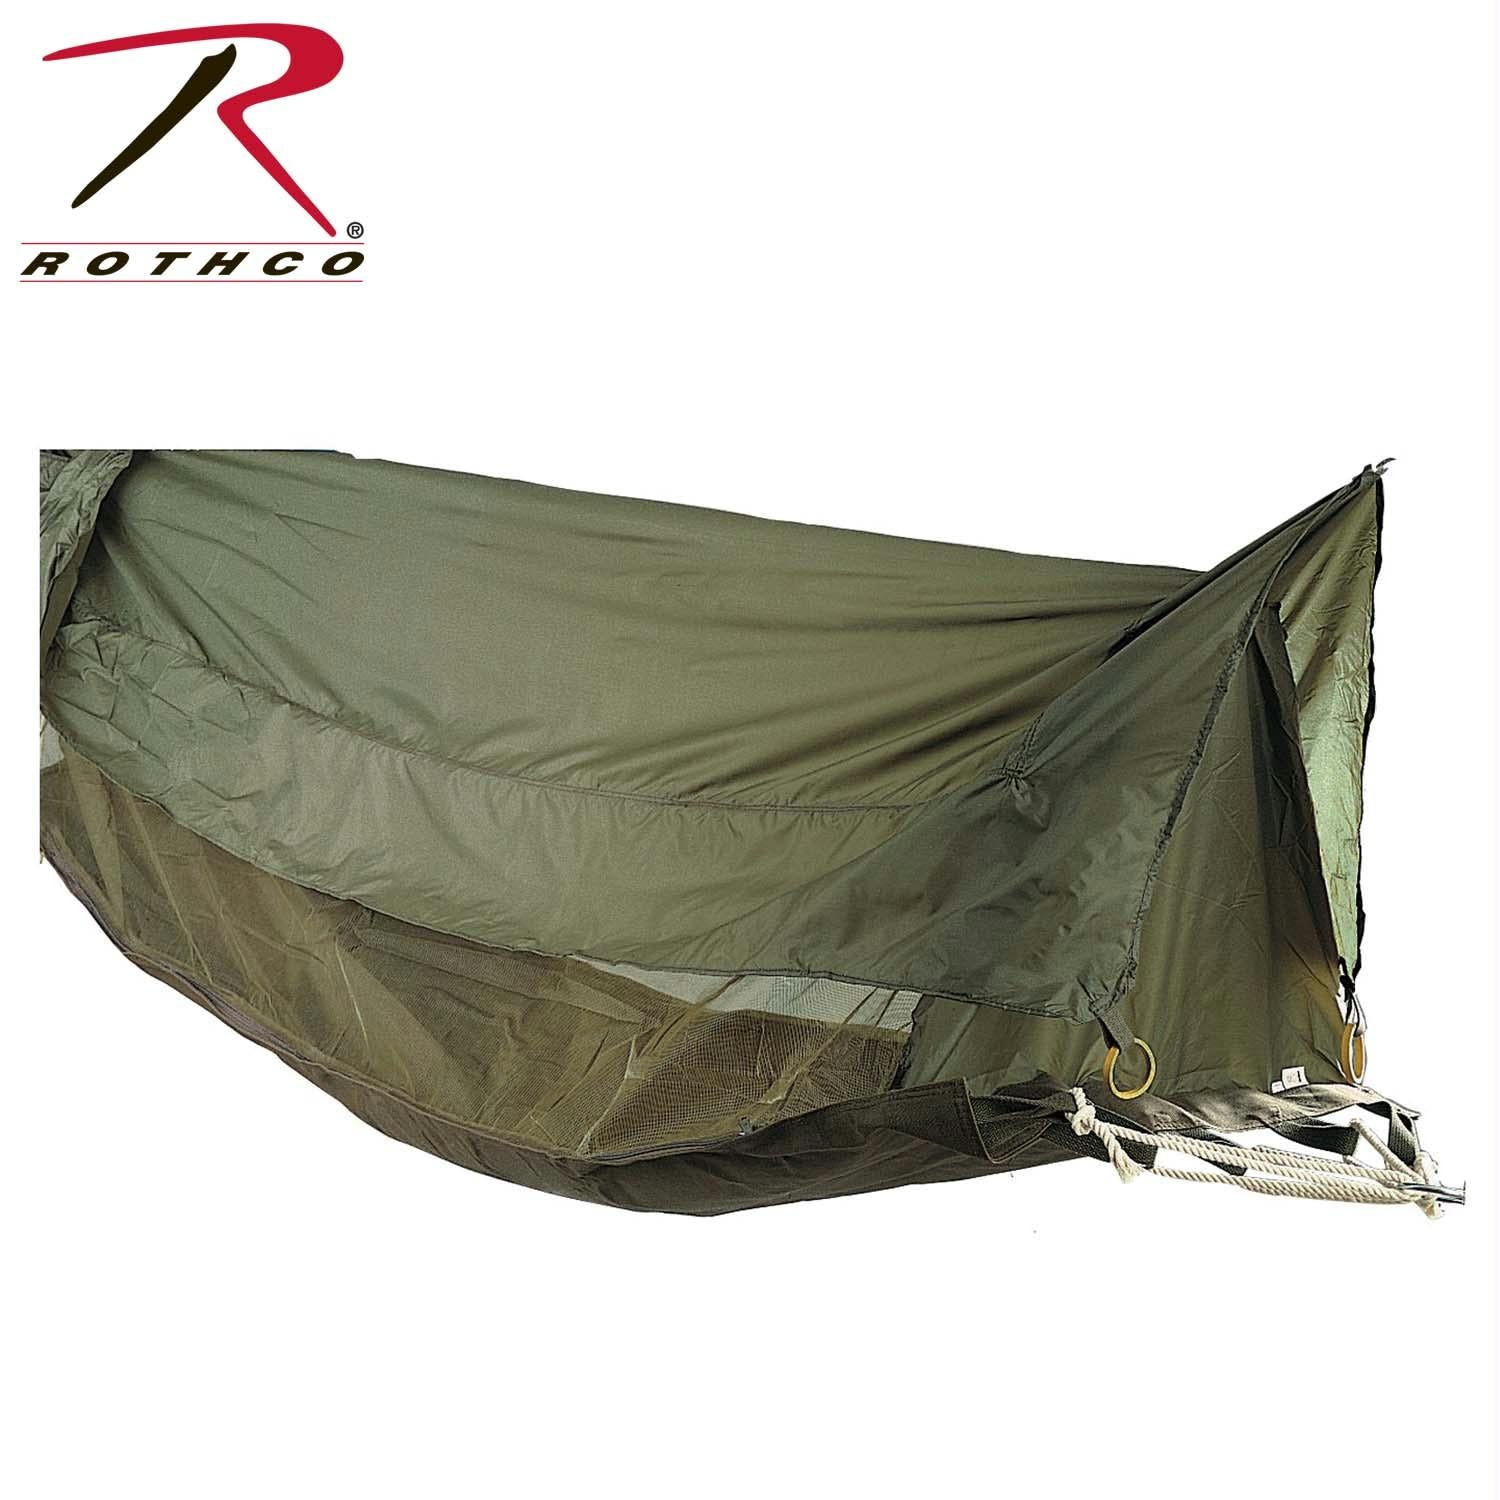 Rothco Jungle Hammock - Olive Drab